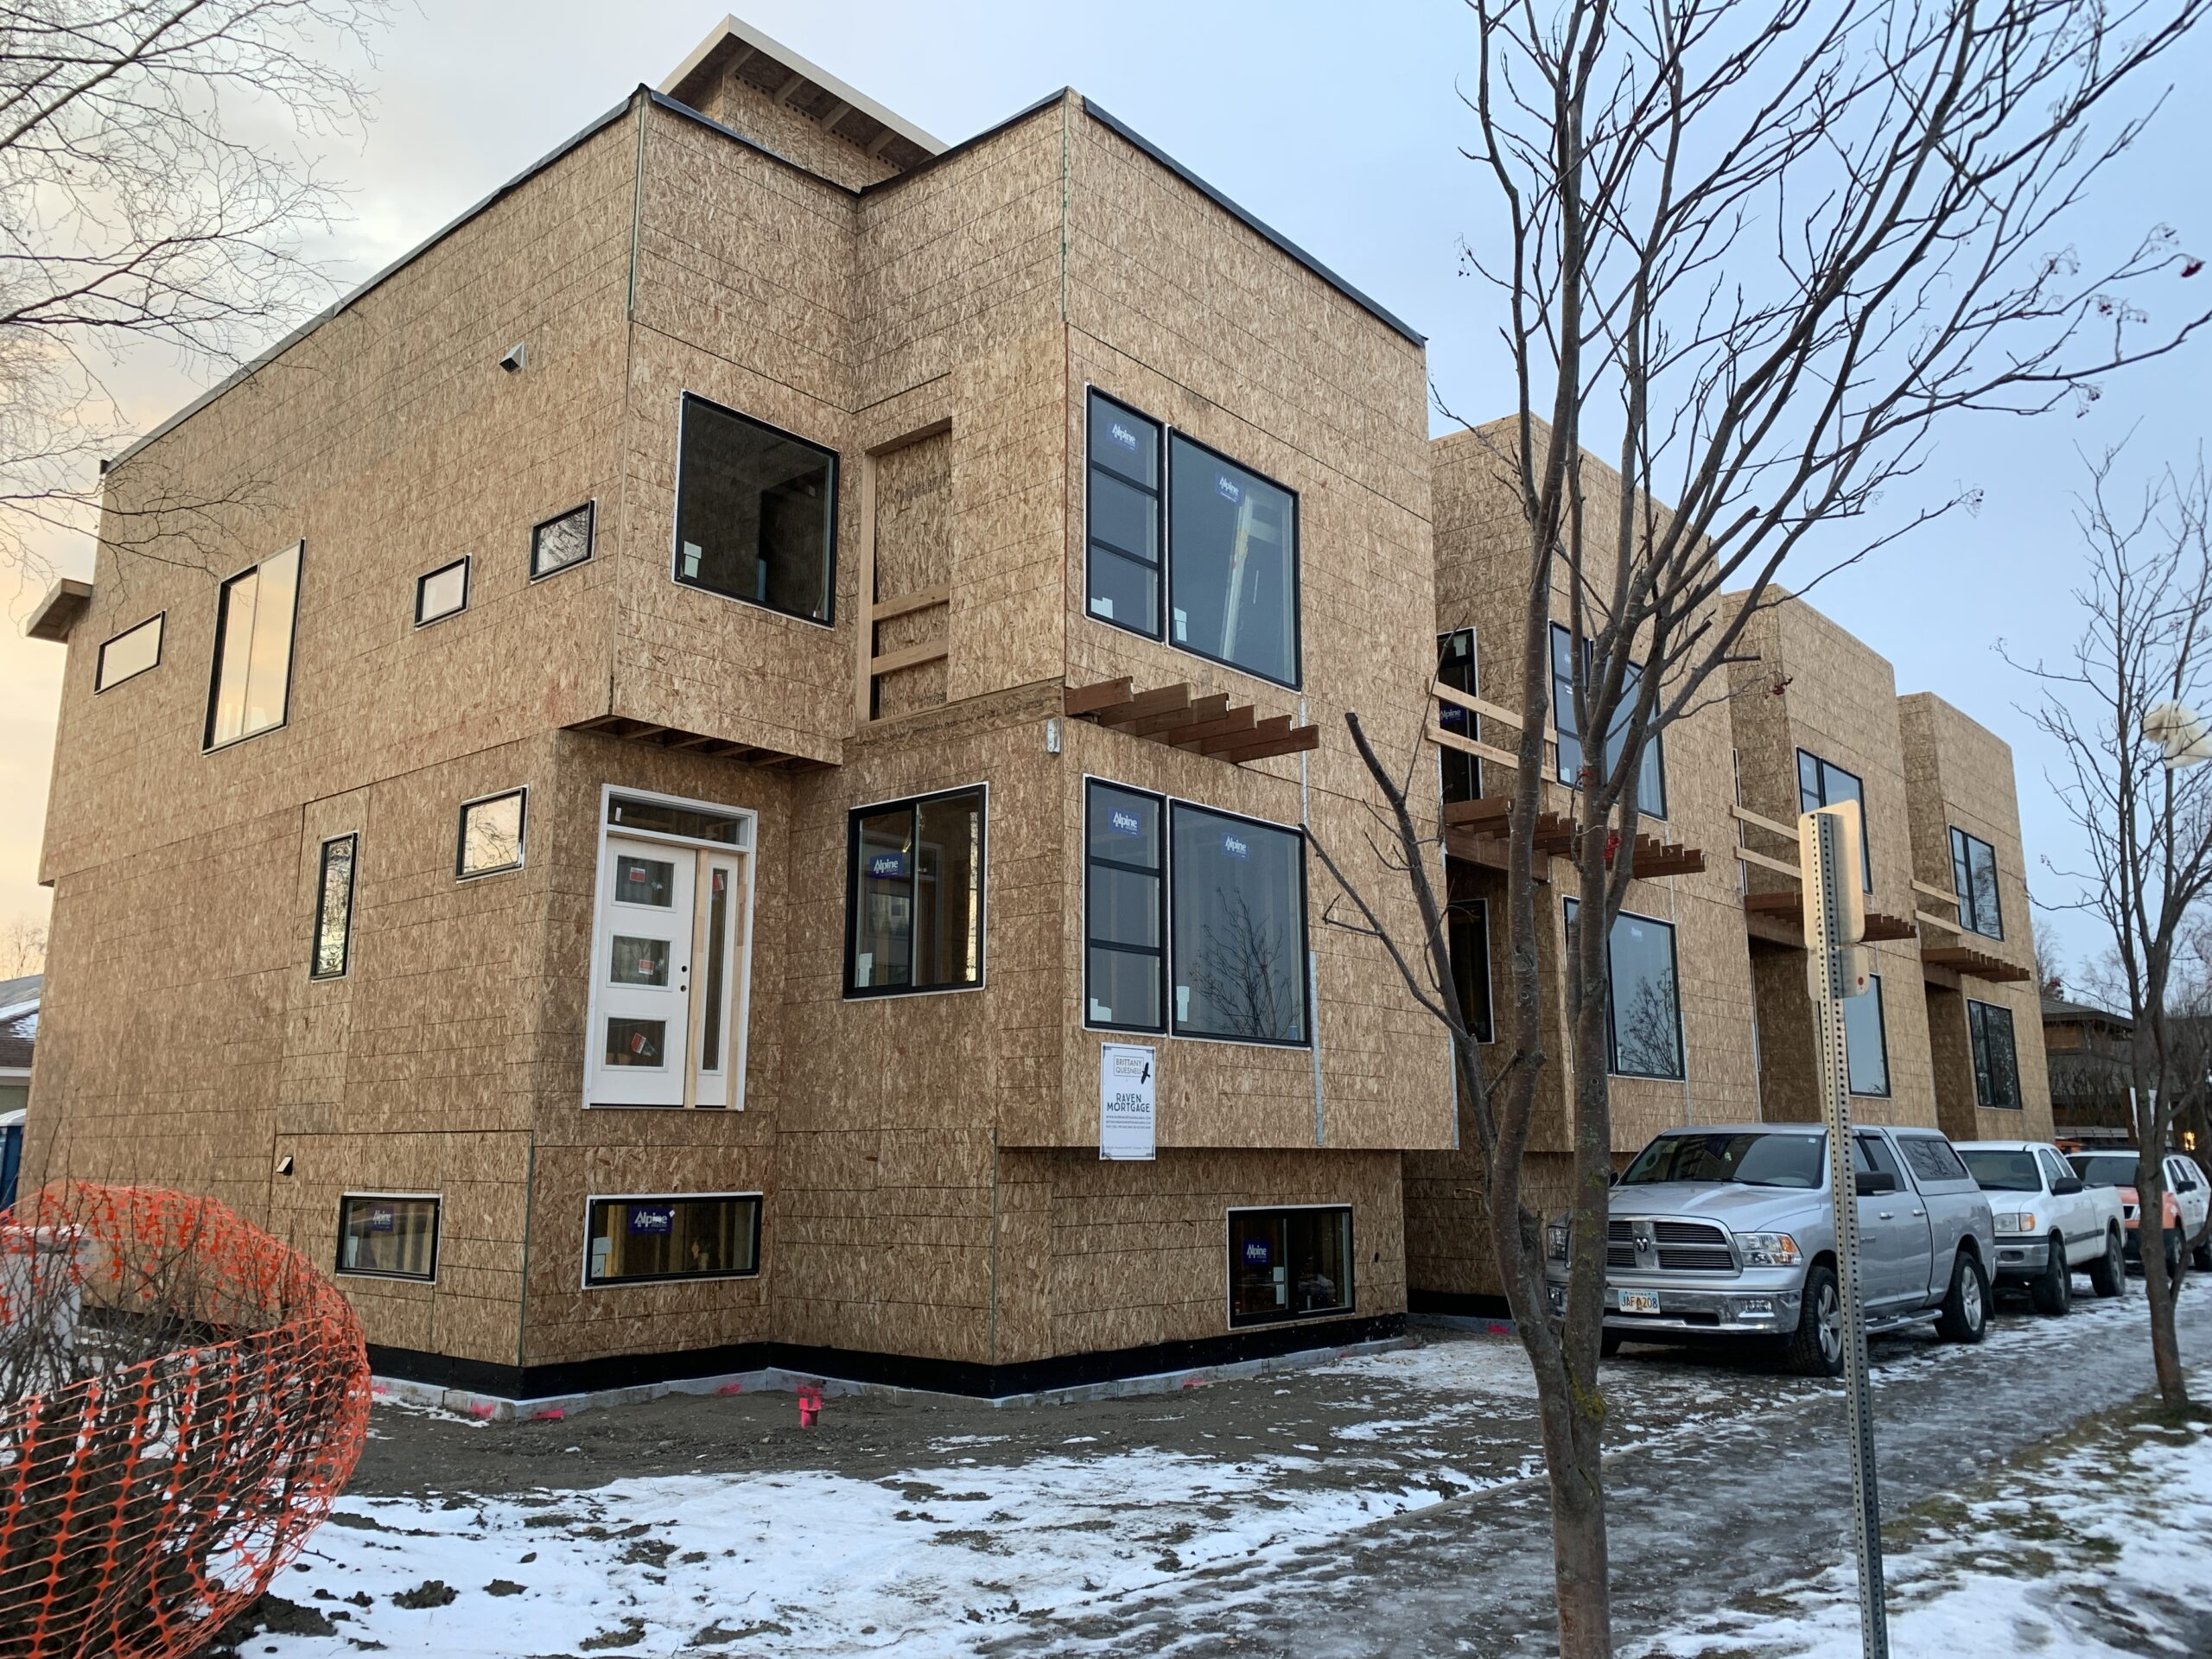 Contemporary townhouses along Delaney Park are nearing completion